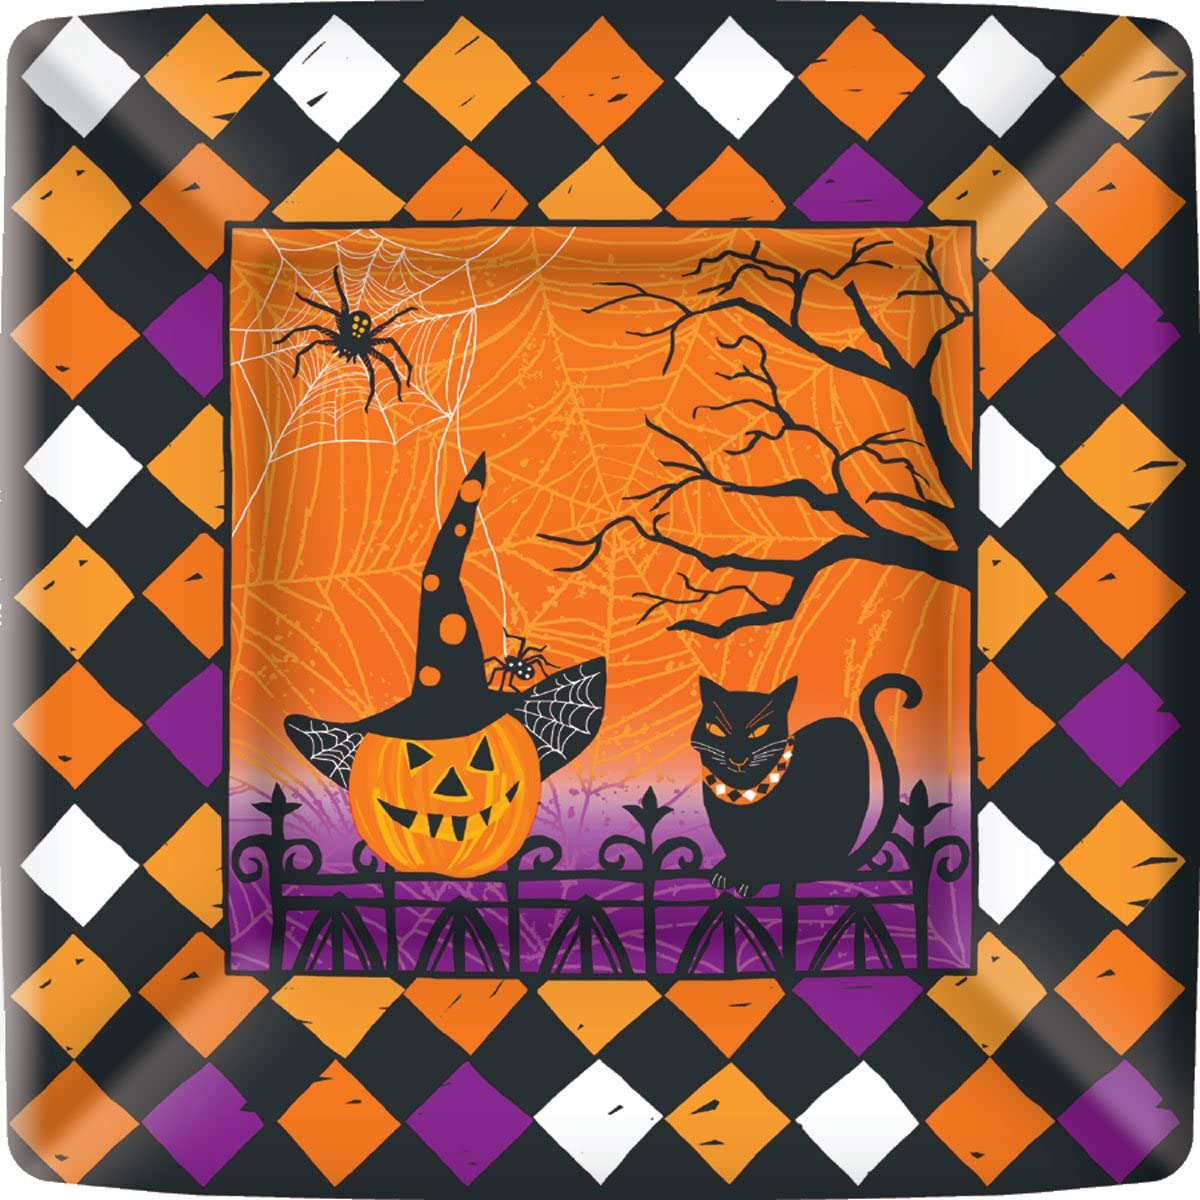 Penelope's Parties 8 Count Square Party Plates, 10-Inch, Haunted Halloween